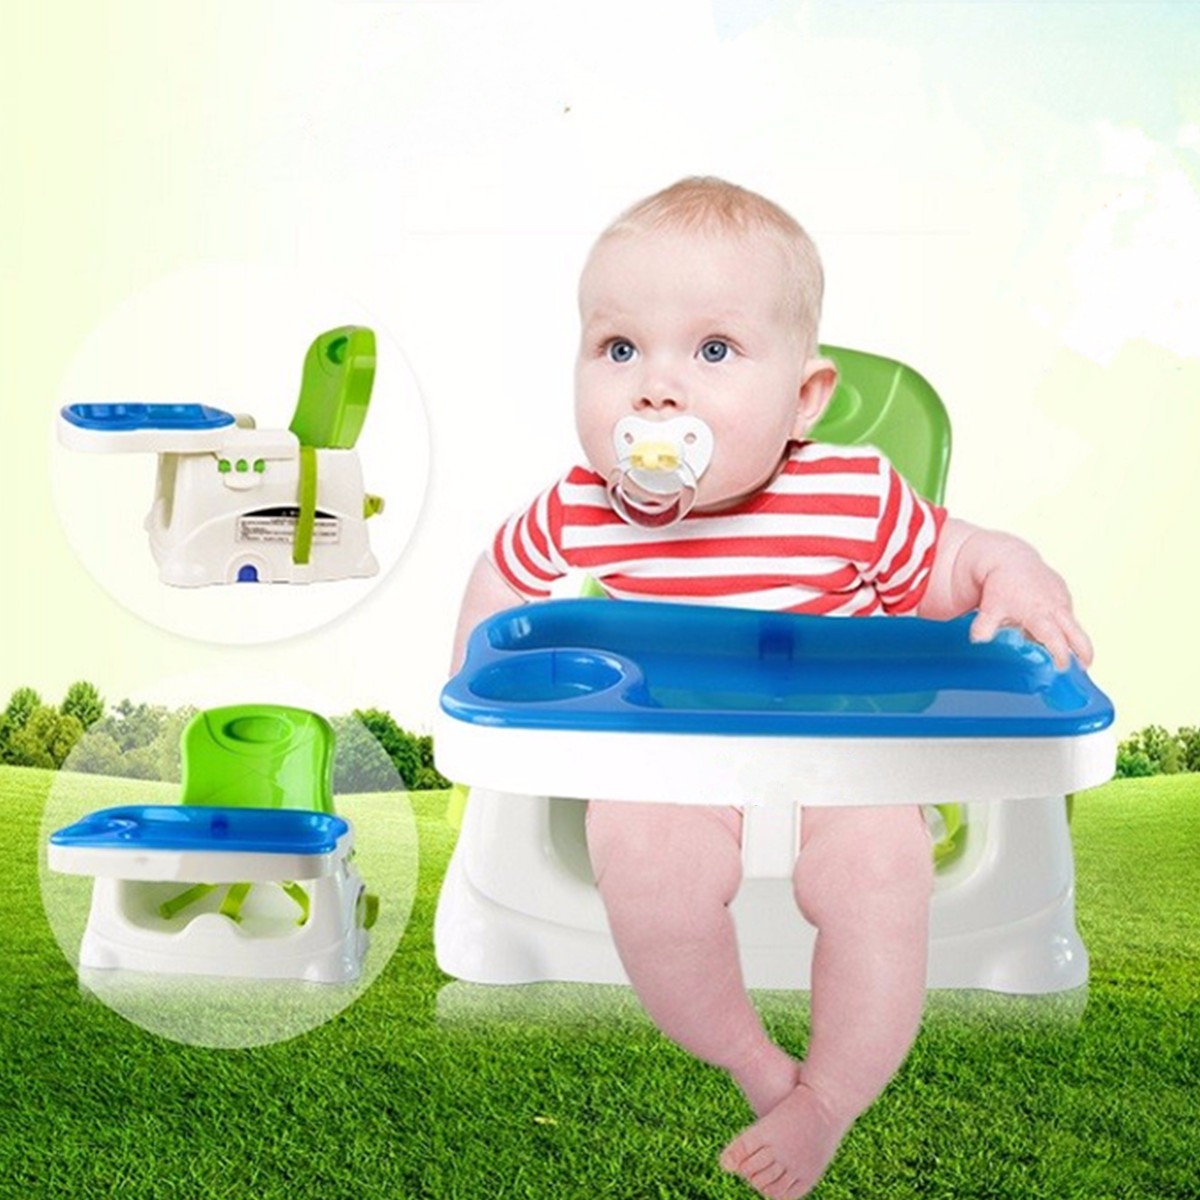 Portable Foldable Baby Toddler Eating Feeding High Chair Highchair Booster Seat Tools Accessories